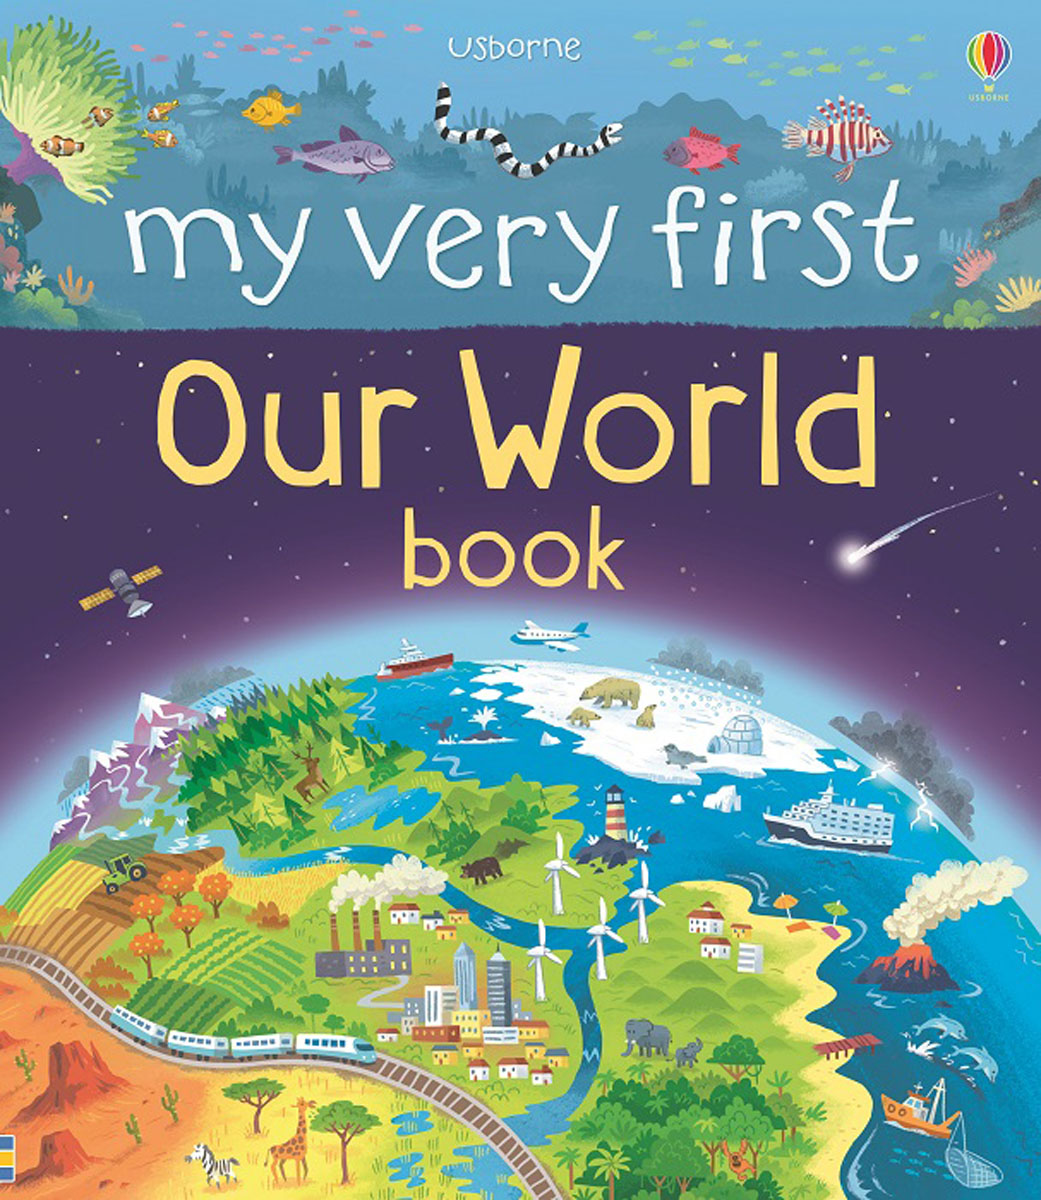 My Very First Our World Book this globalizing world